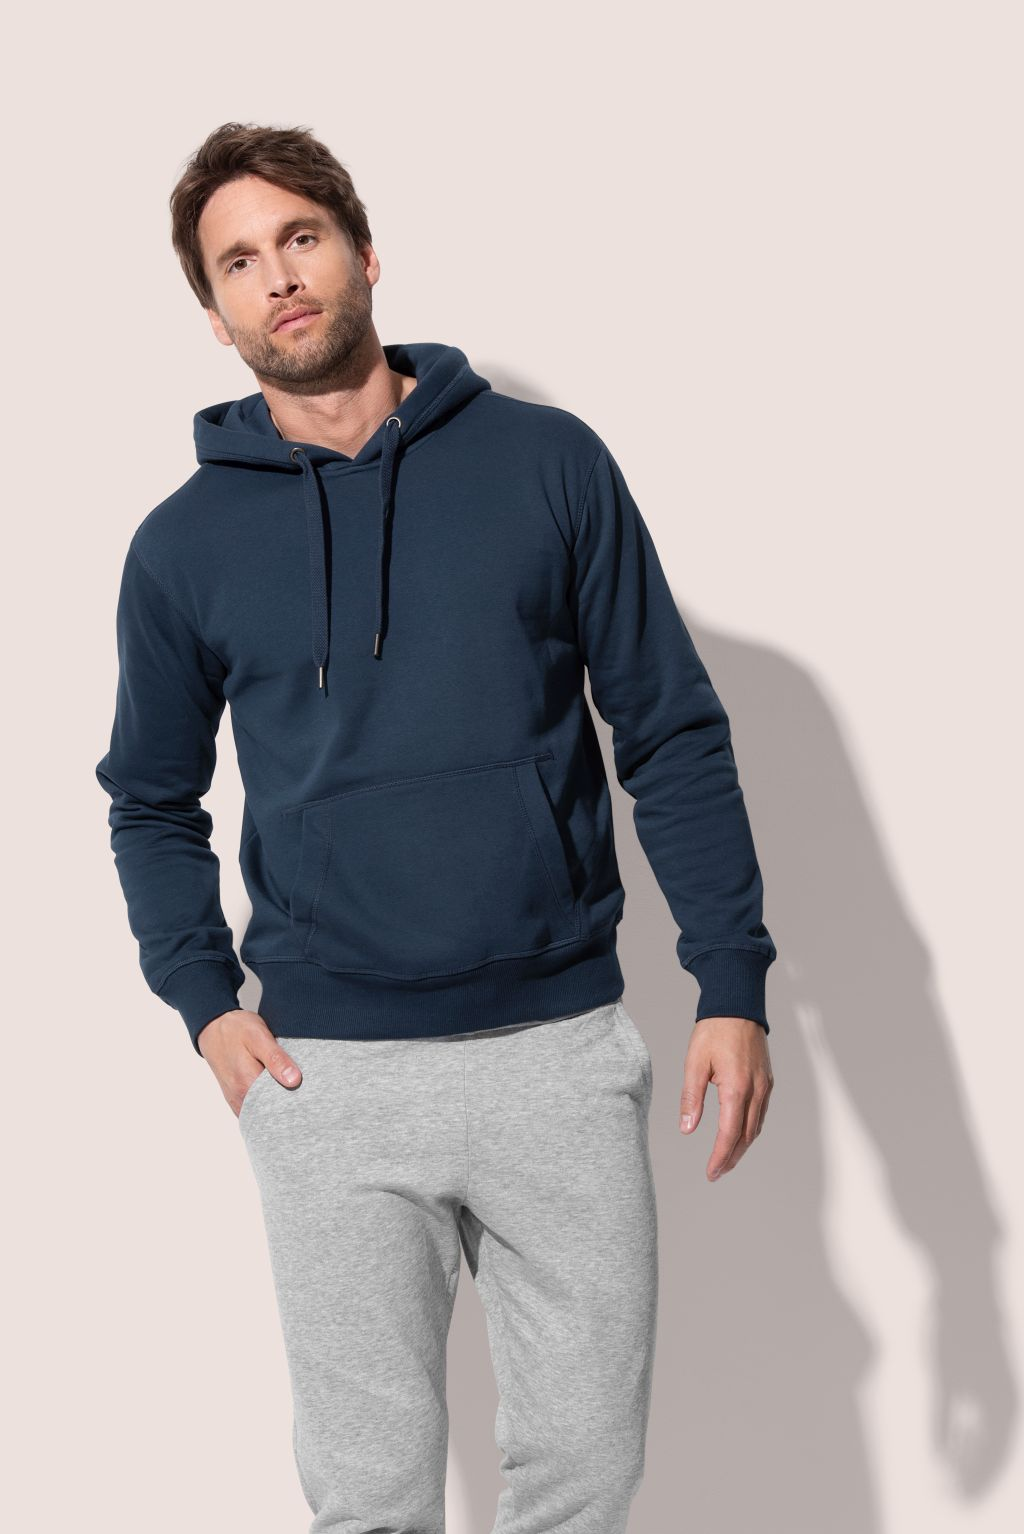 Pulover, DR, Active Sweat Hoody, 270 gr